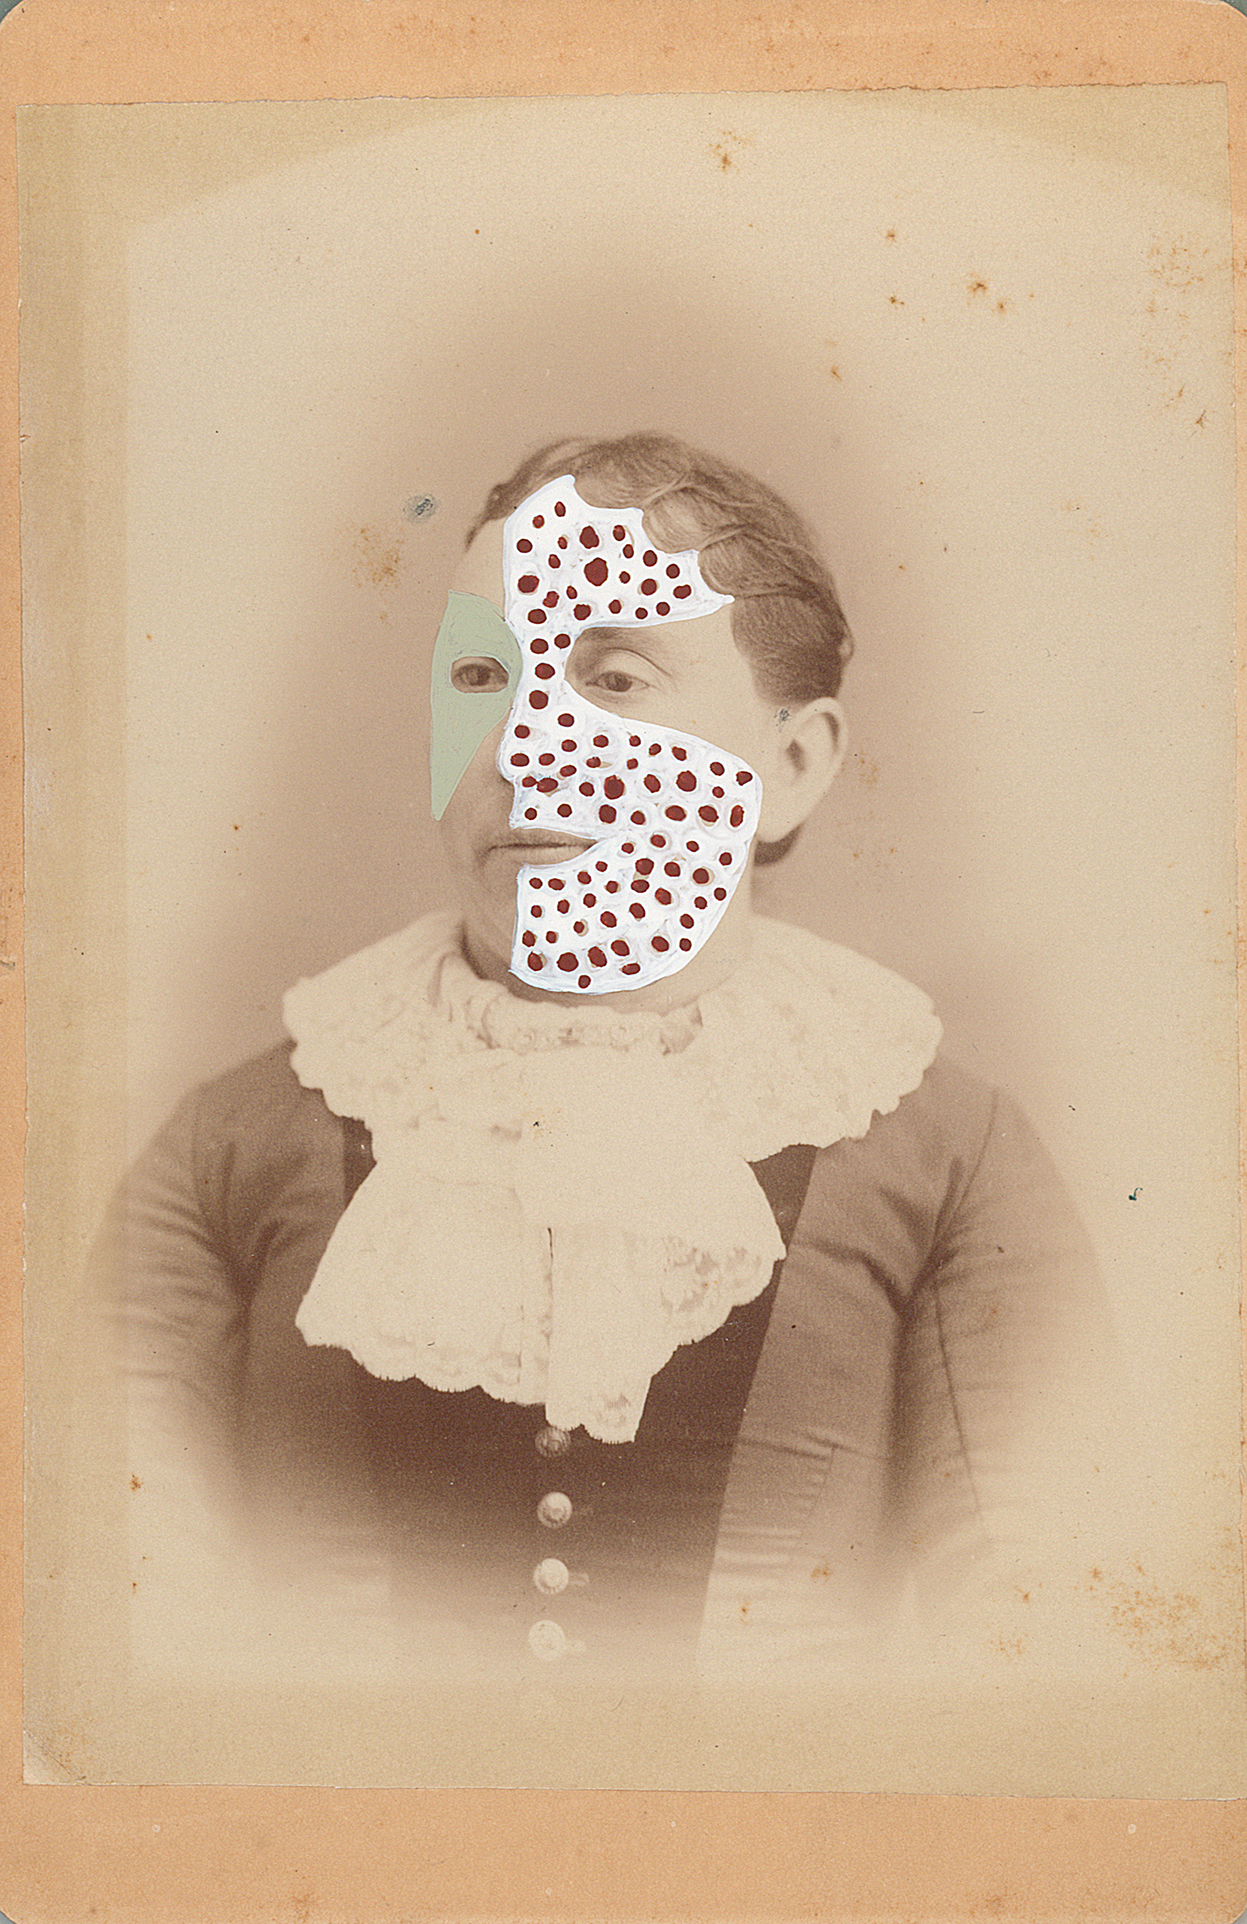 "Mrs. Jeremiah Adams 1862/2014 , gouache and ink on vintage photograph, 6.5"" x 4.25"", 2014"